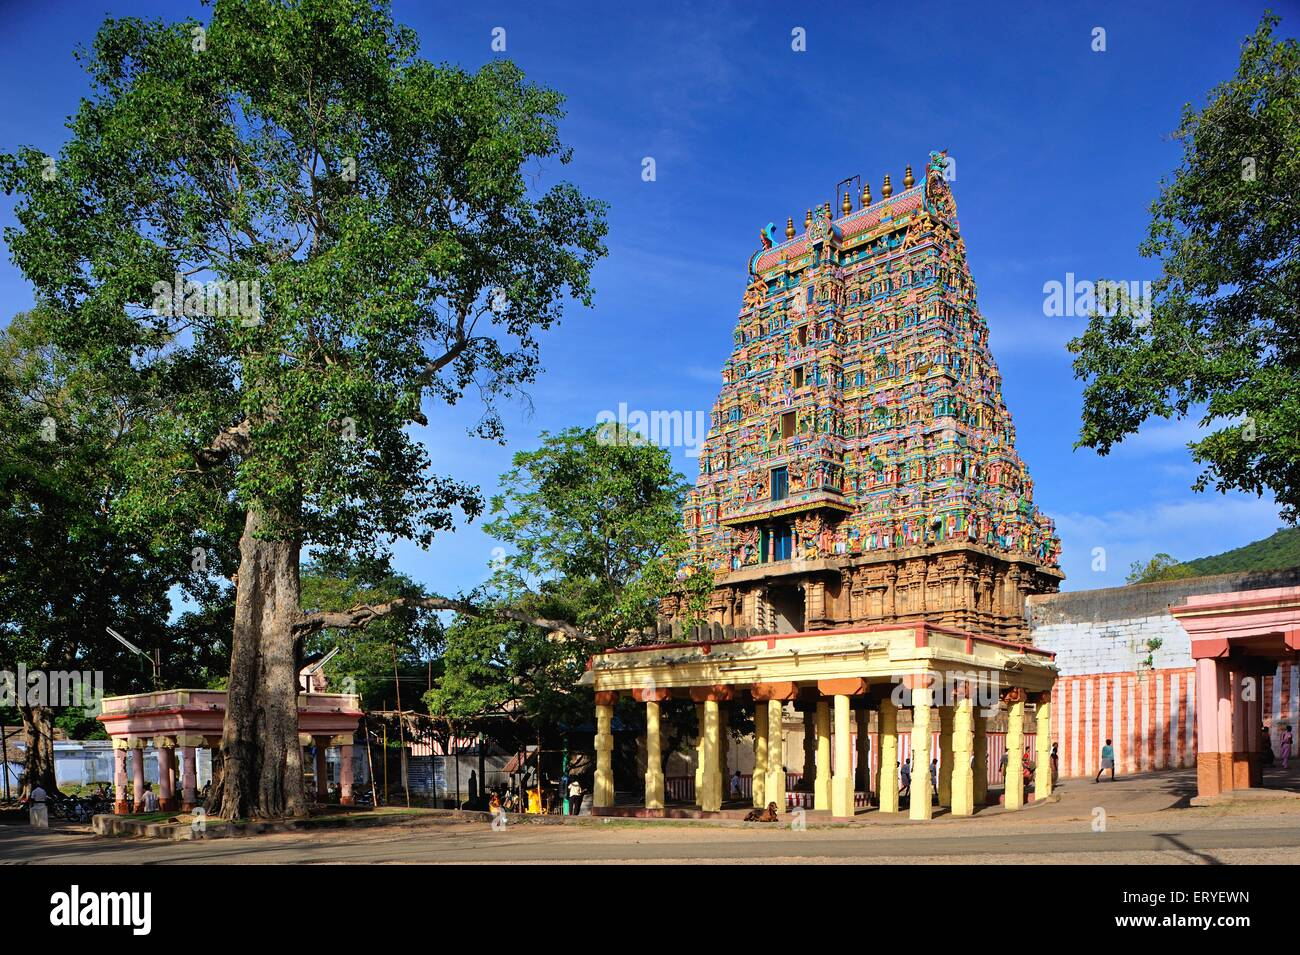 Madurai Temple Stock Photos & Madurai Temple Stock Images